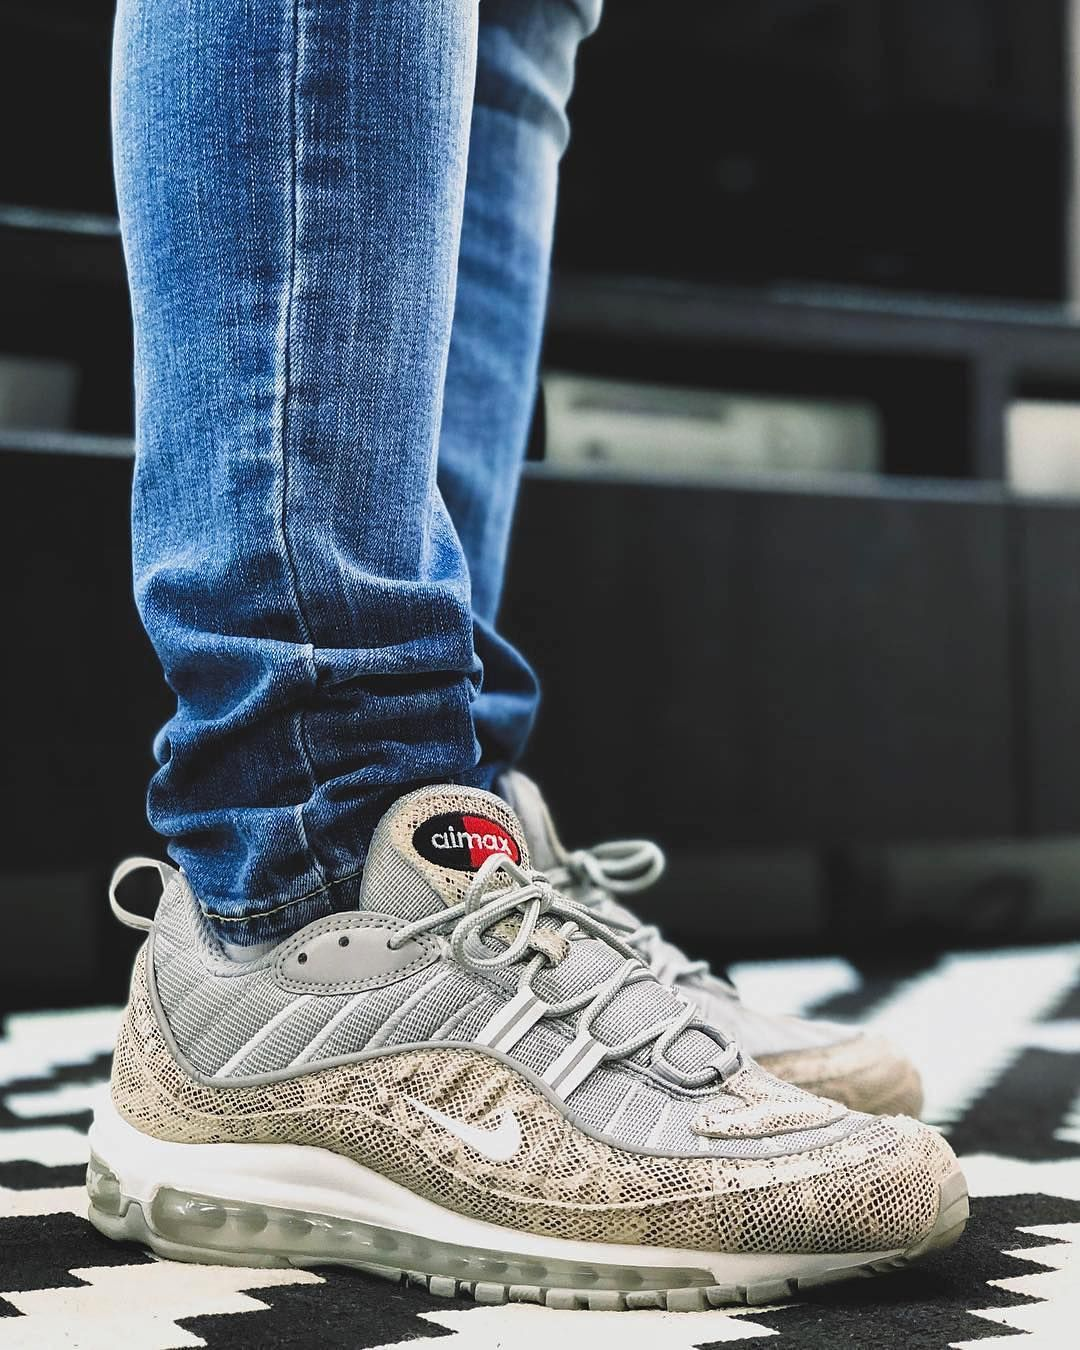 What Did You Wear Today Supreme X Nike Air Max 98 Snakeskin